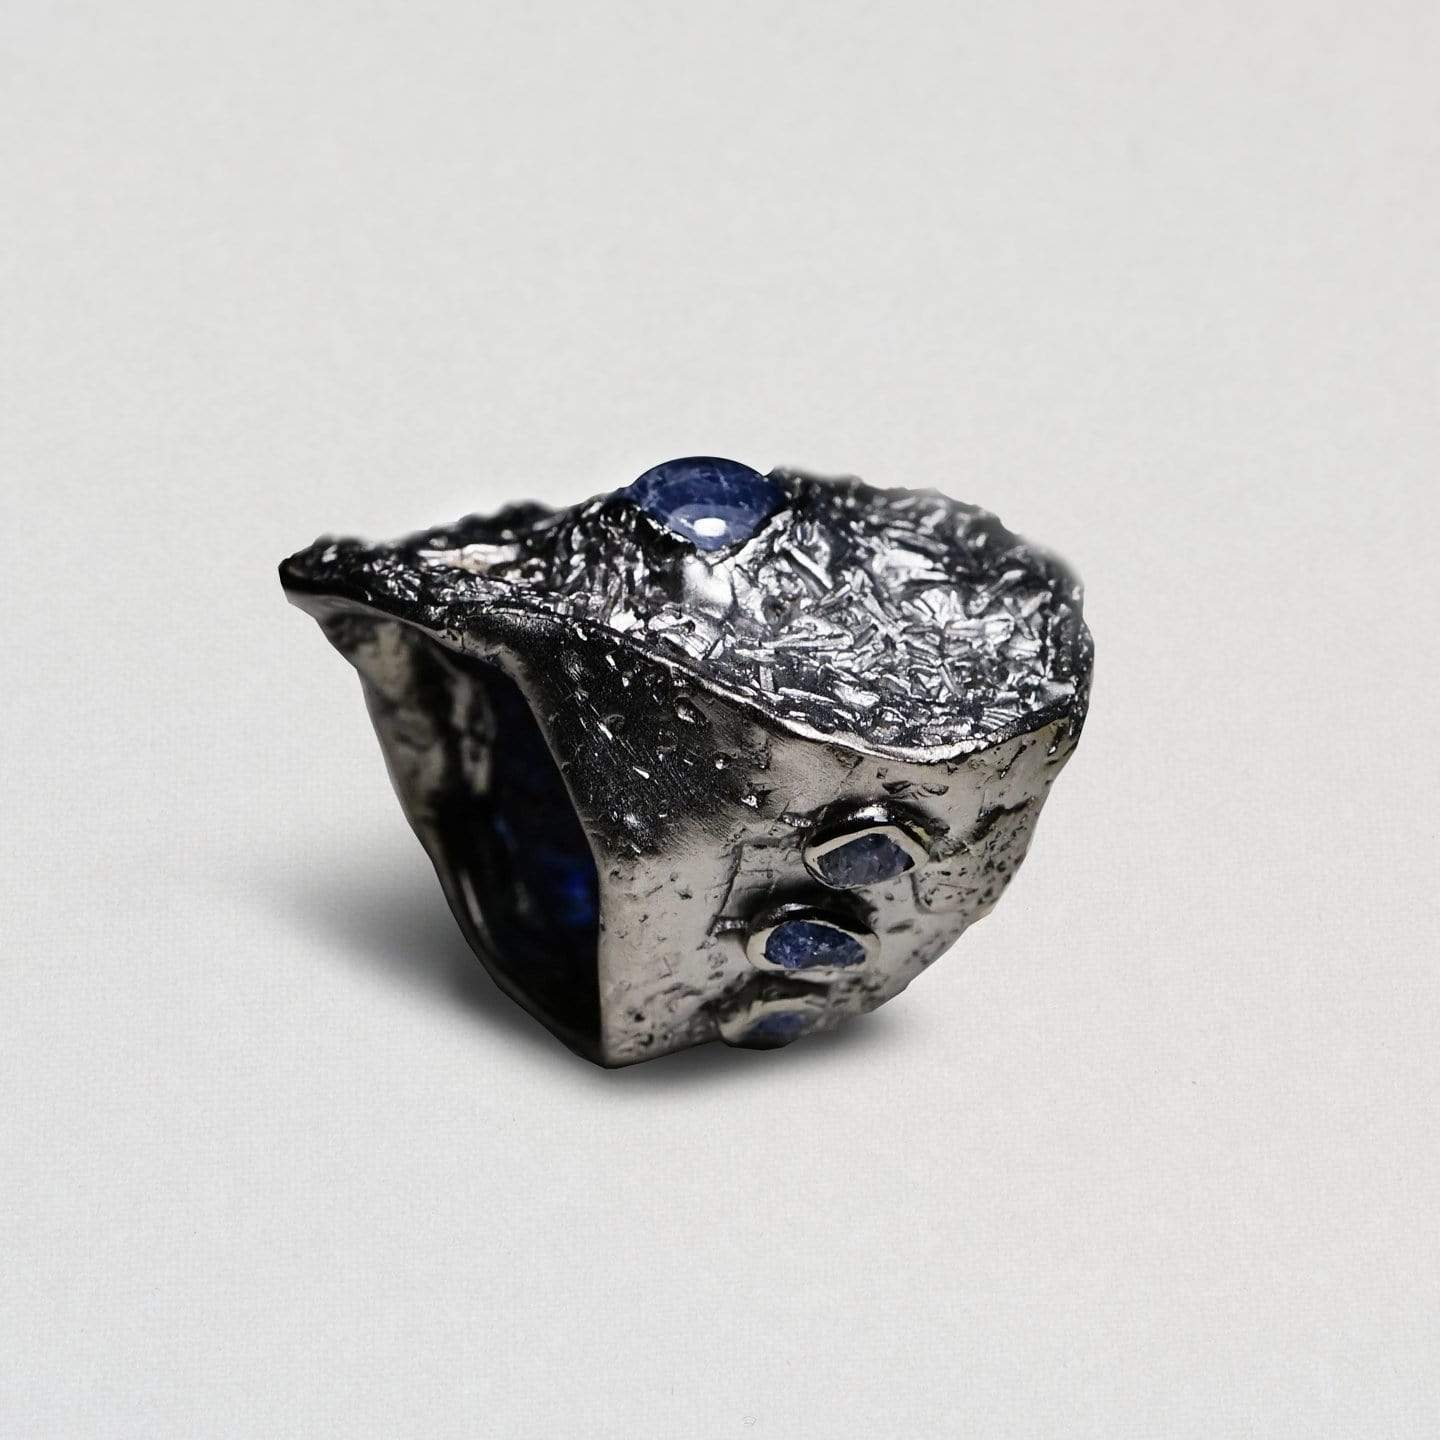 Titania Ring, Exclusive, gray, Rhodium, Sapphire, spo-disabled, StoneColor:DeepBlue, Style:Statement, Titania Ring